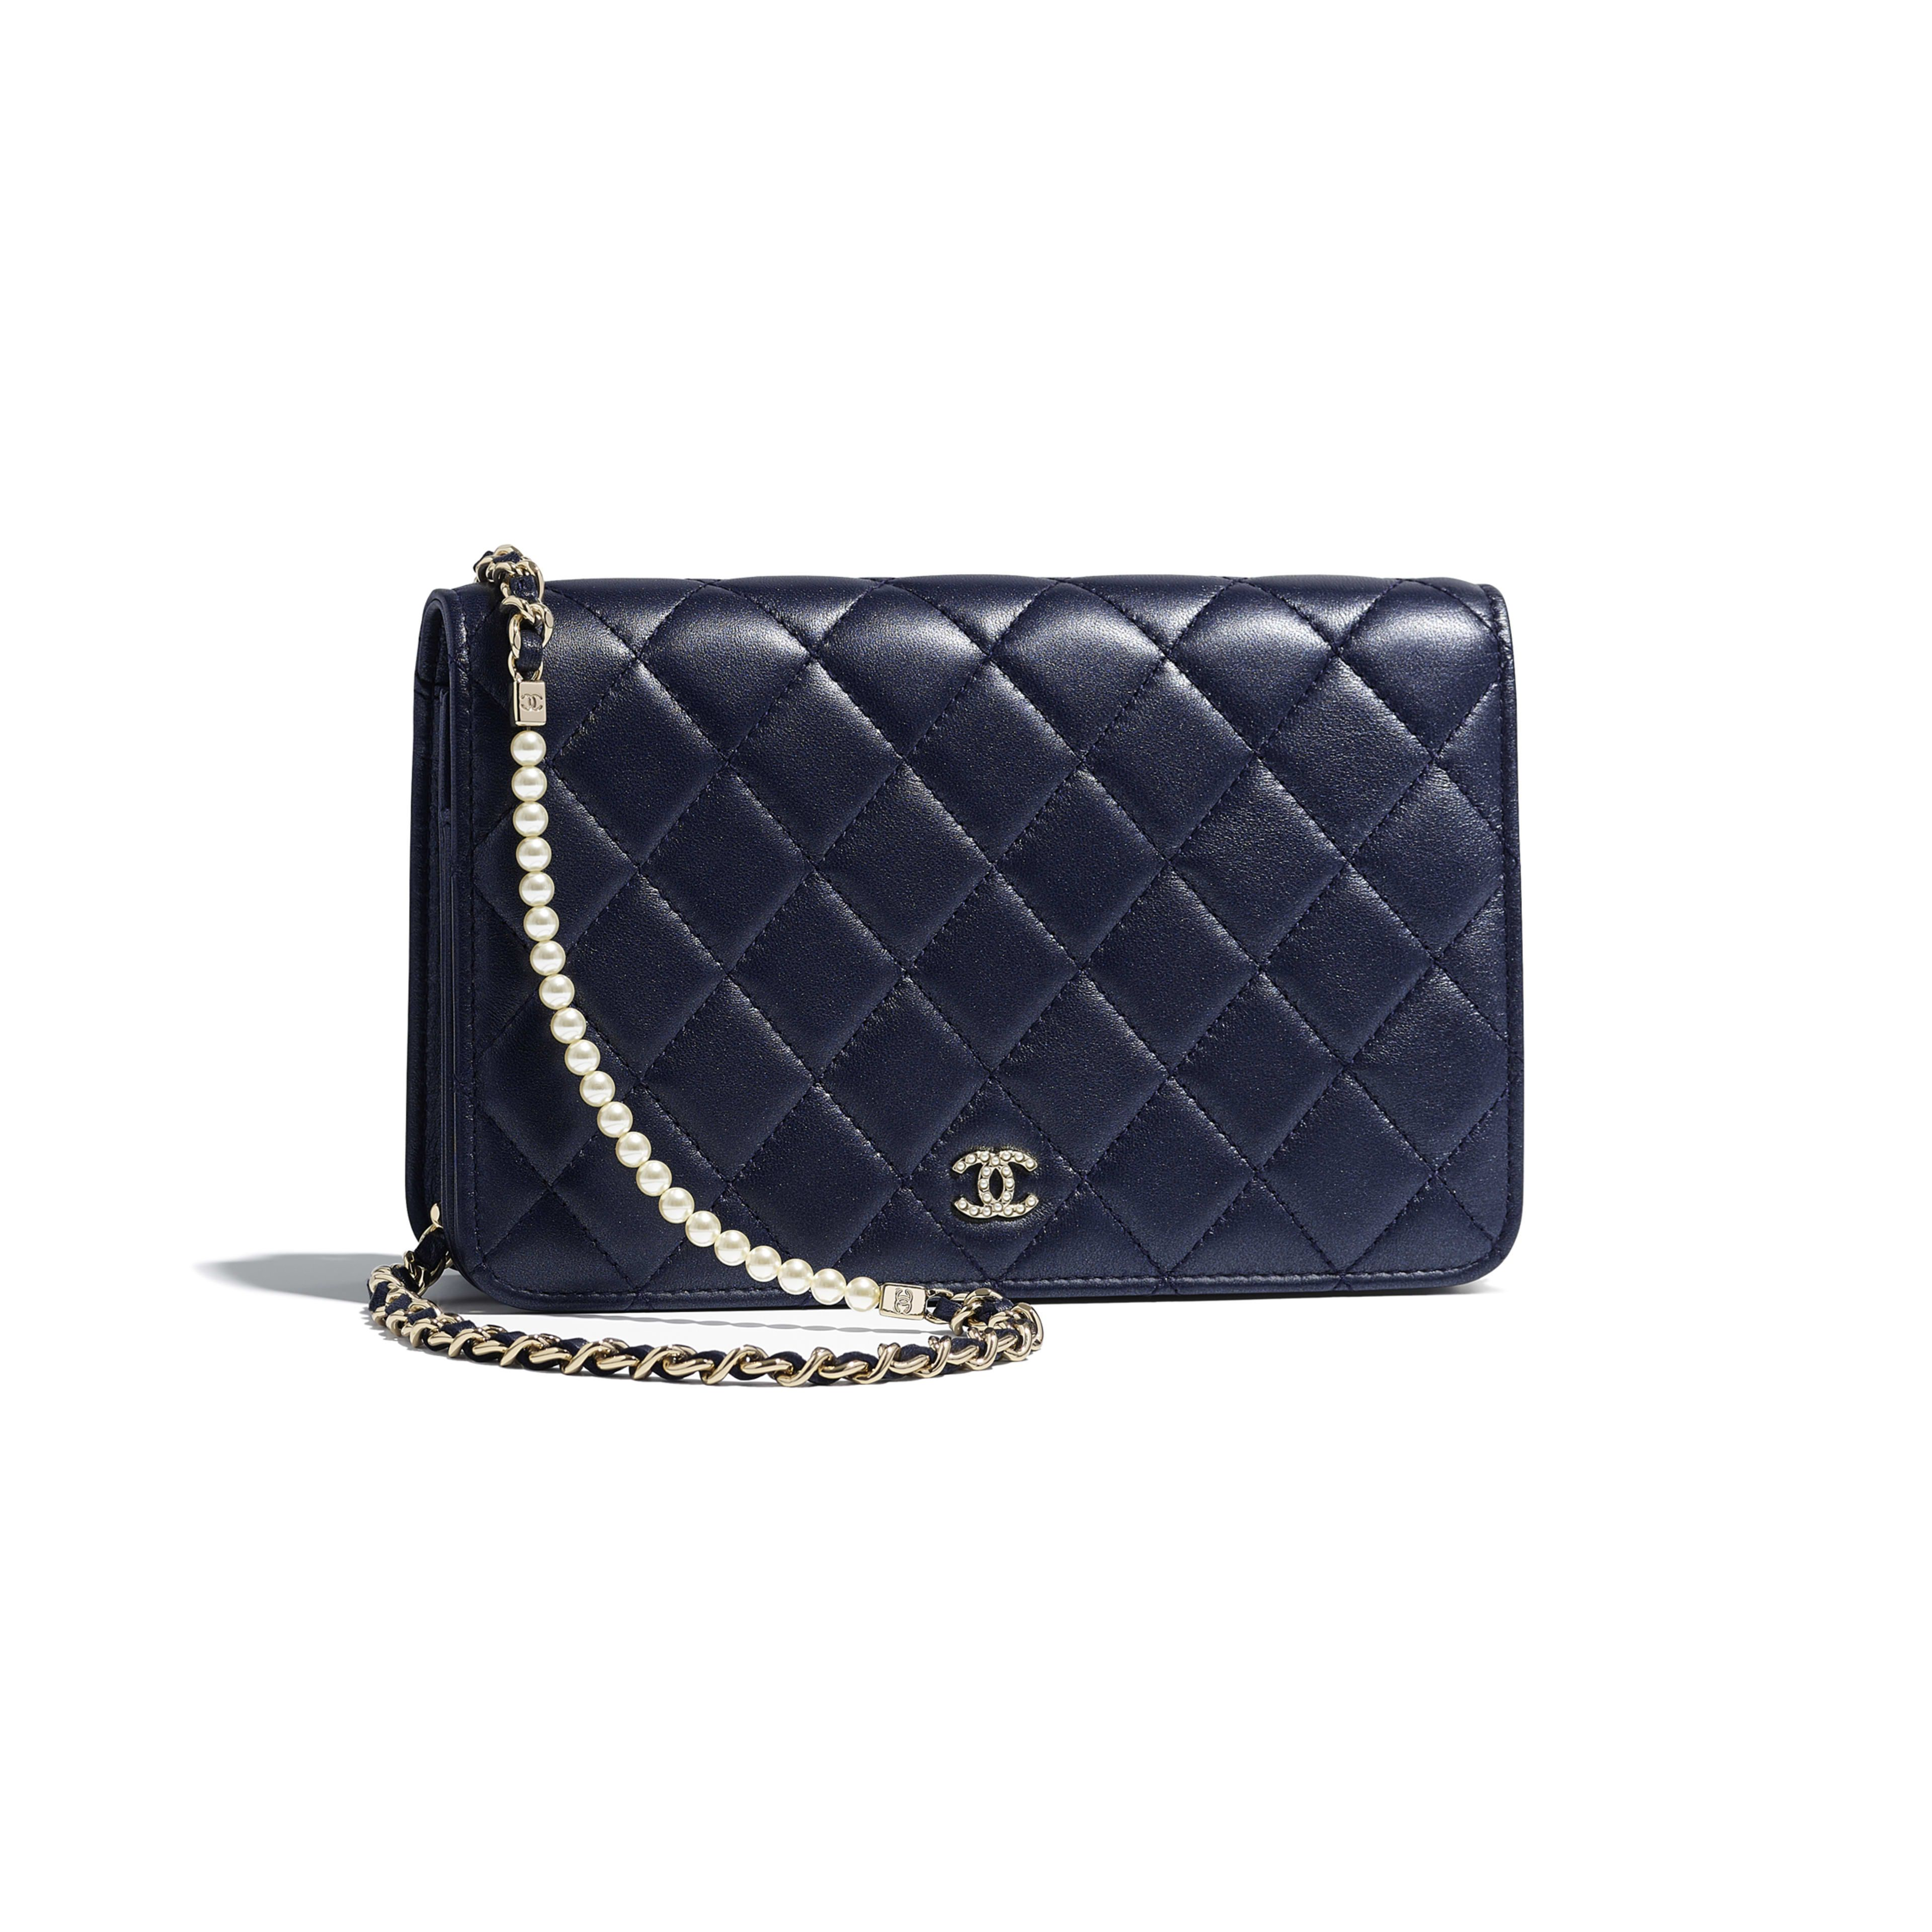 2d4ffb97dc Wallet on Chain - Navy Blue - Iridescent Lambskin & Gold-Tone Metal -  Default view - see full sized version